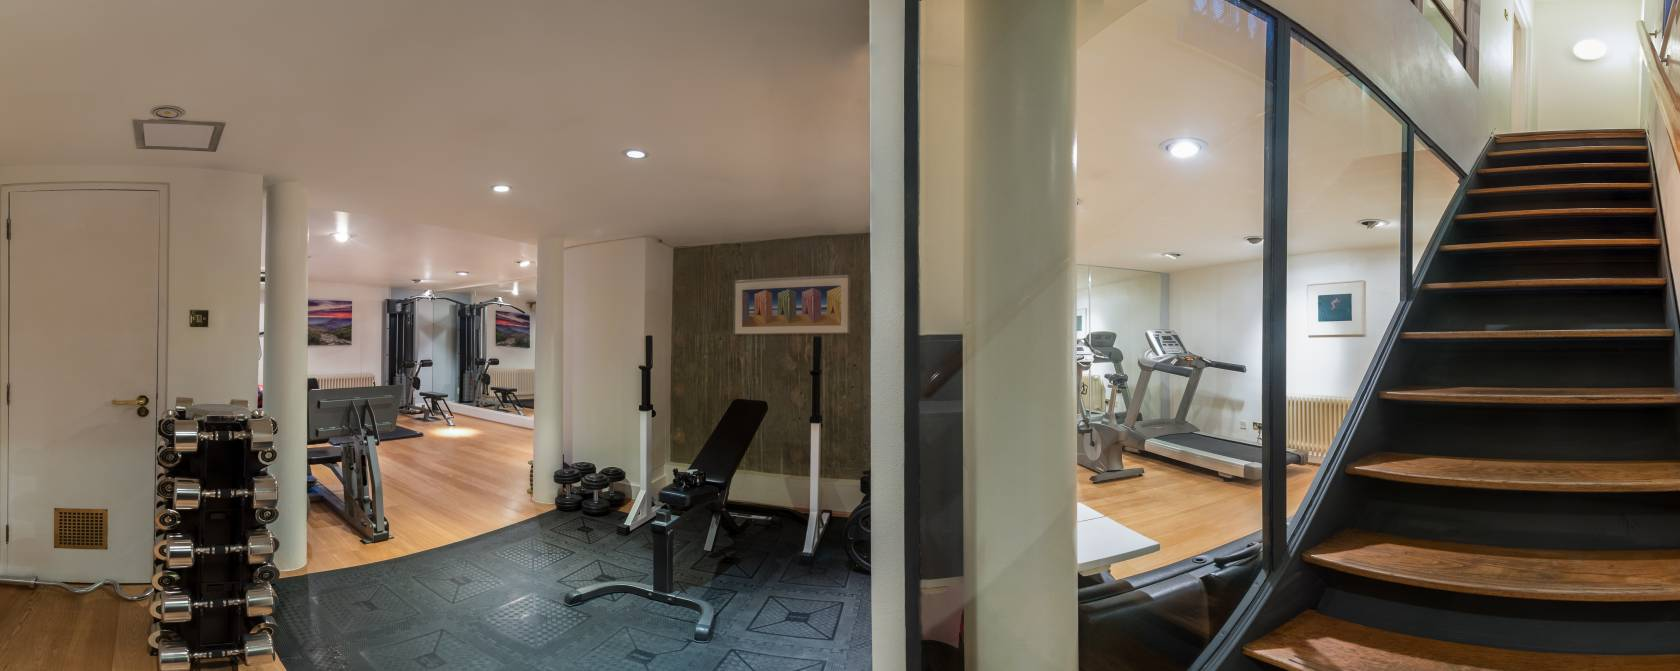 Downstairs at Pete Fraser Fitness - London